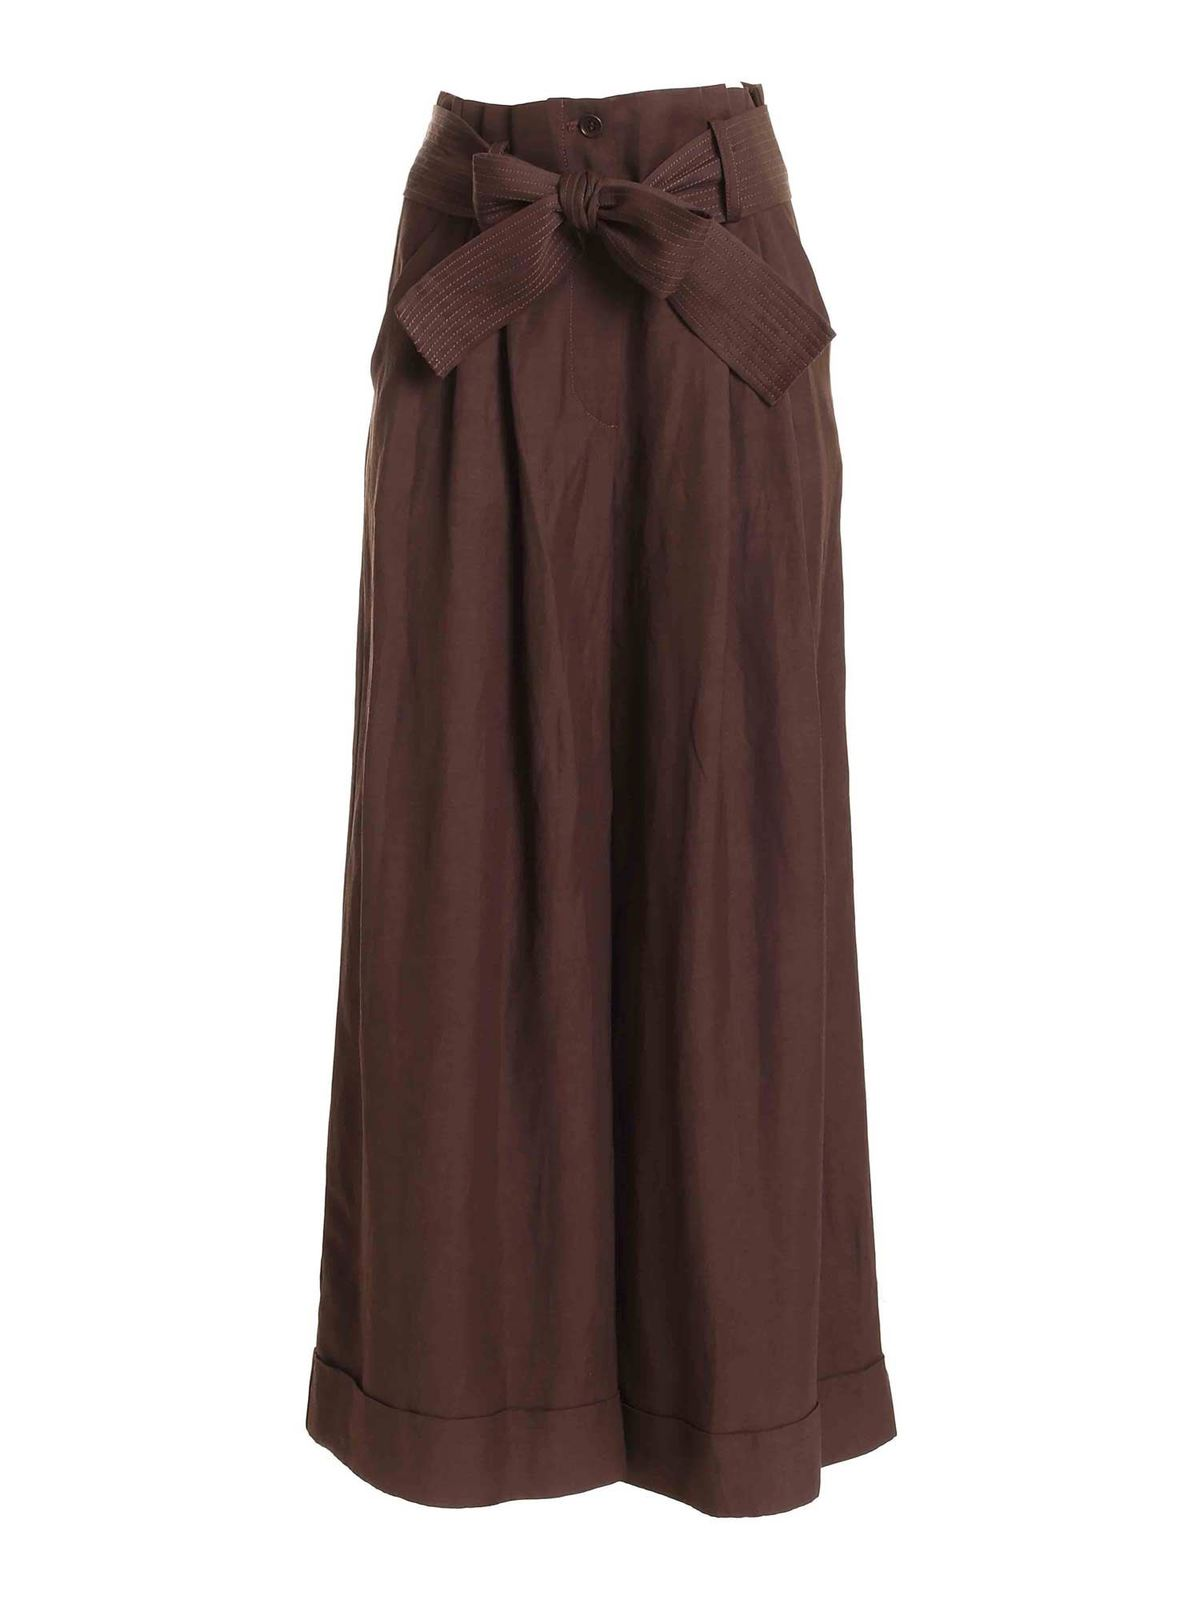 P.a.r.o.s.h. TURNED-UP PALAZZO PANTS IN BROWN